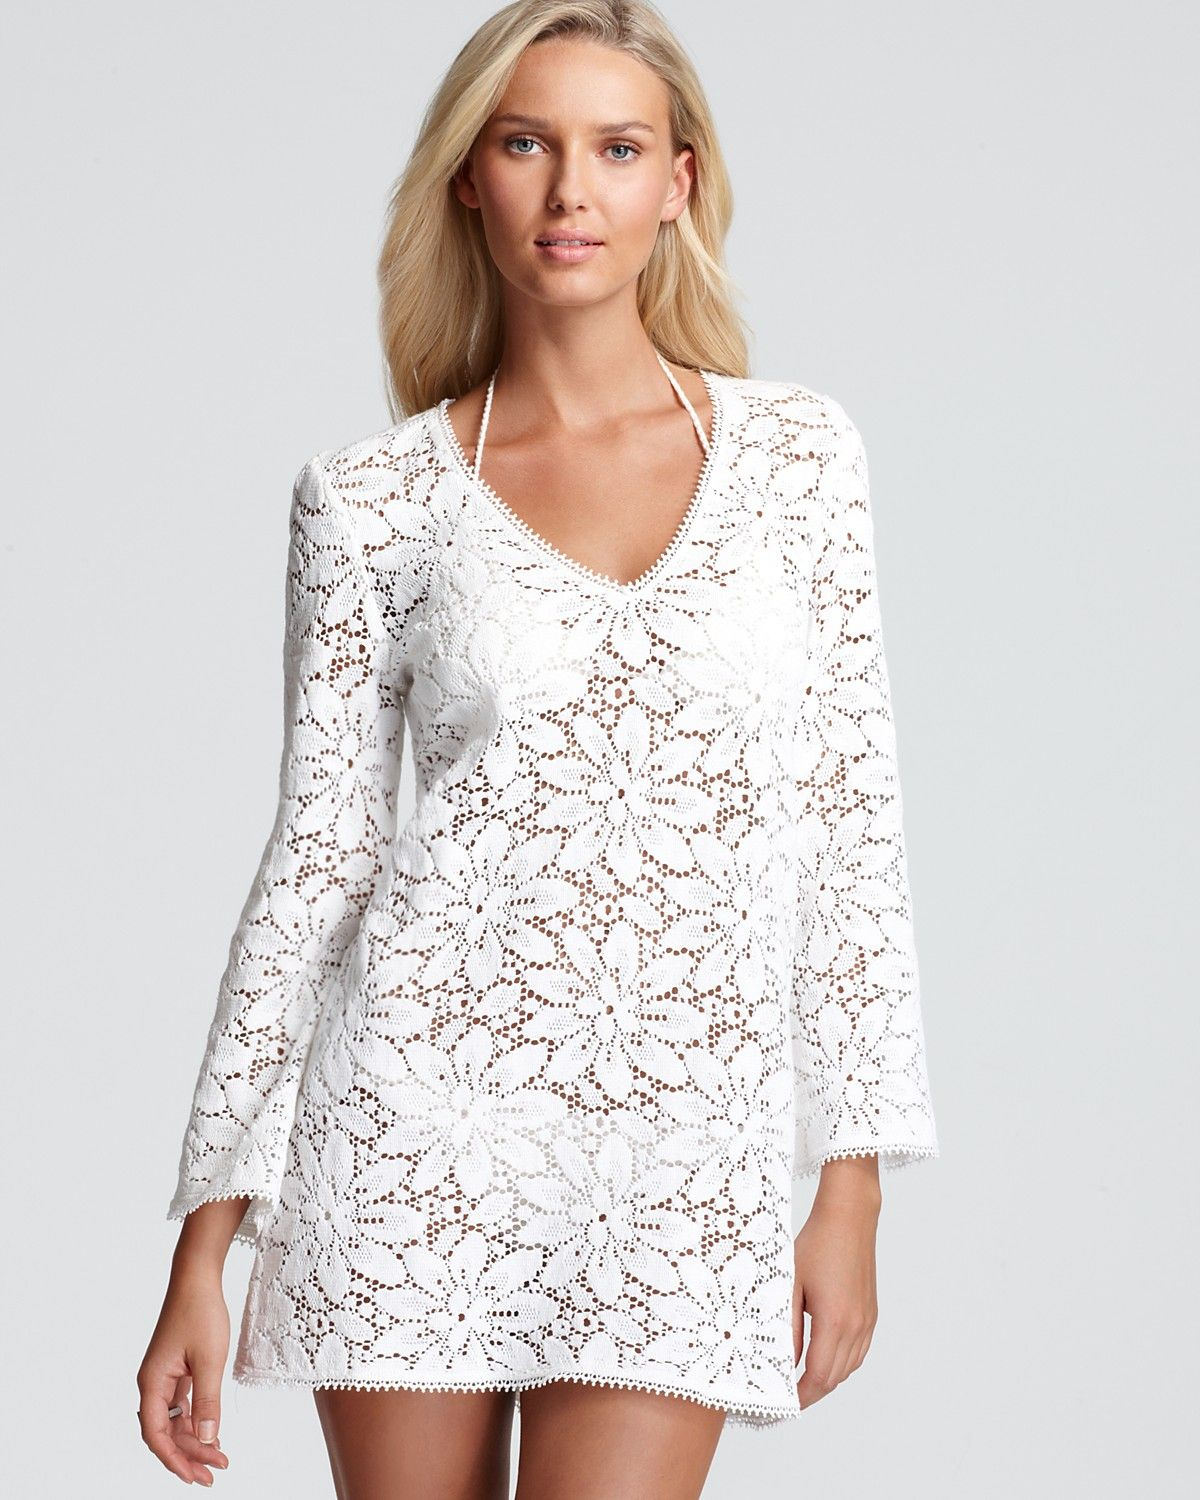 fdd0f005eb3c7 Milly Mykonos Crochet Tunic Swimsuit Coverup | Bloomingdale's $265 ...